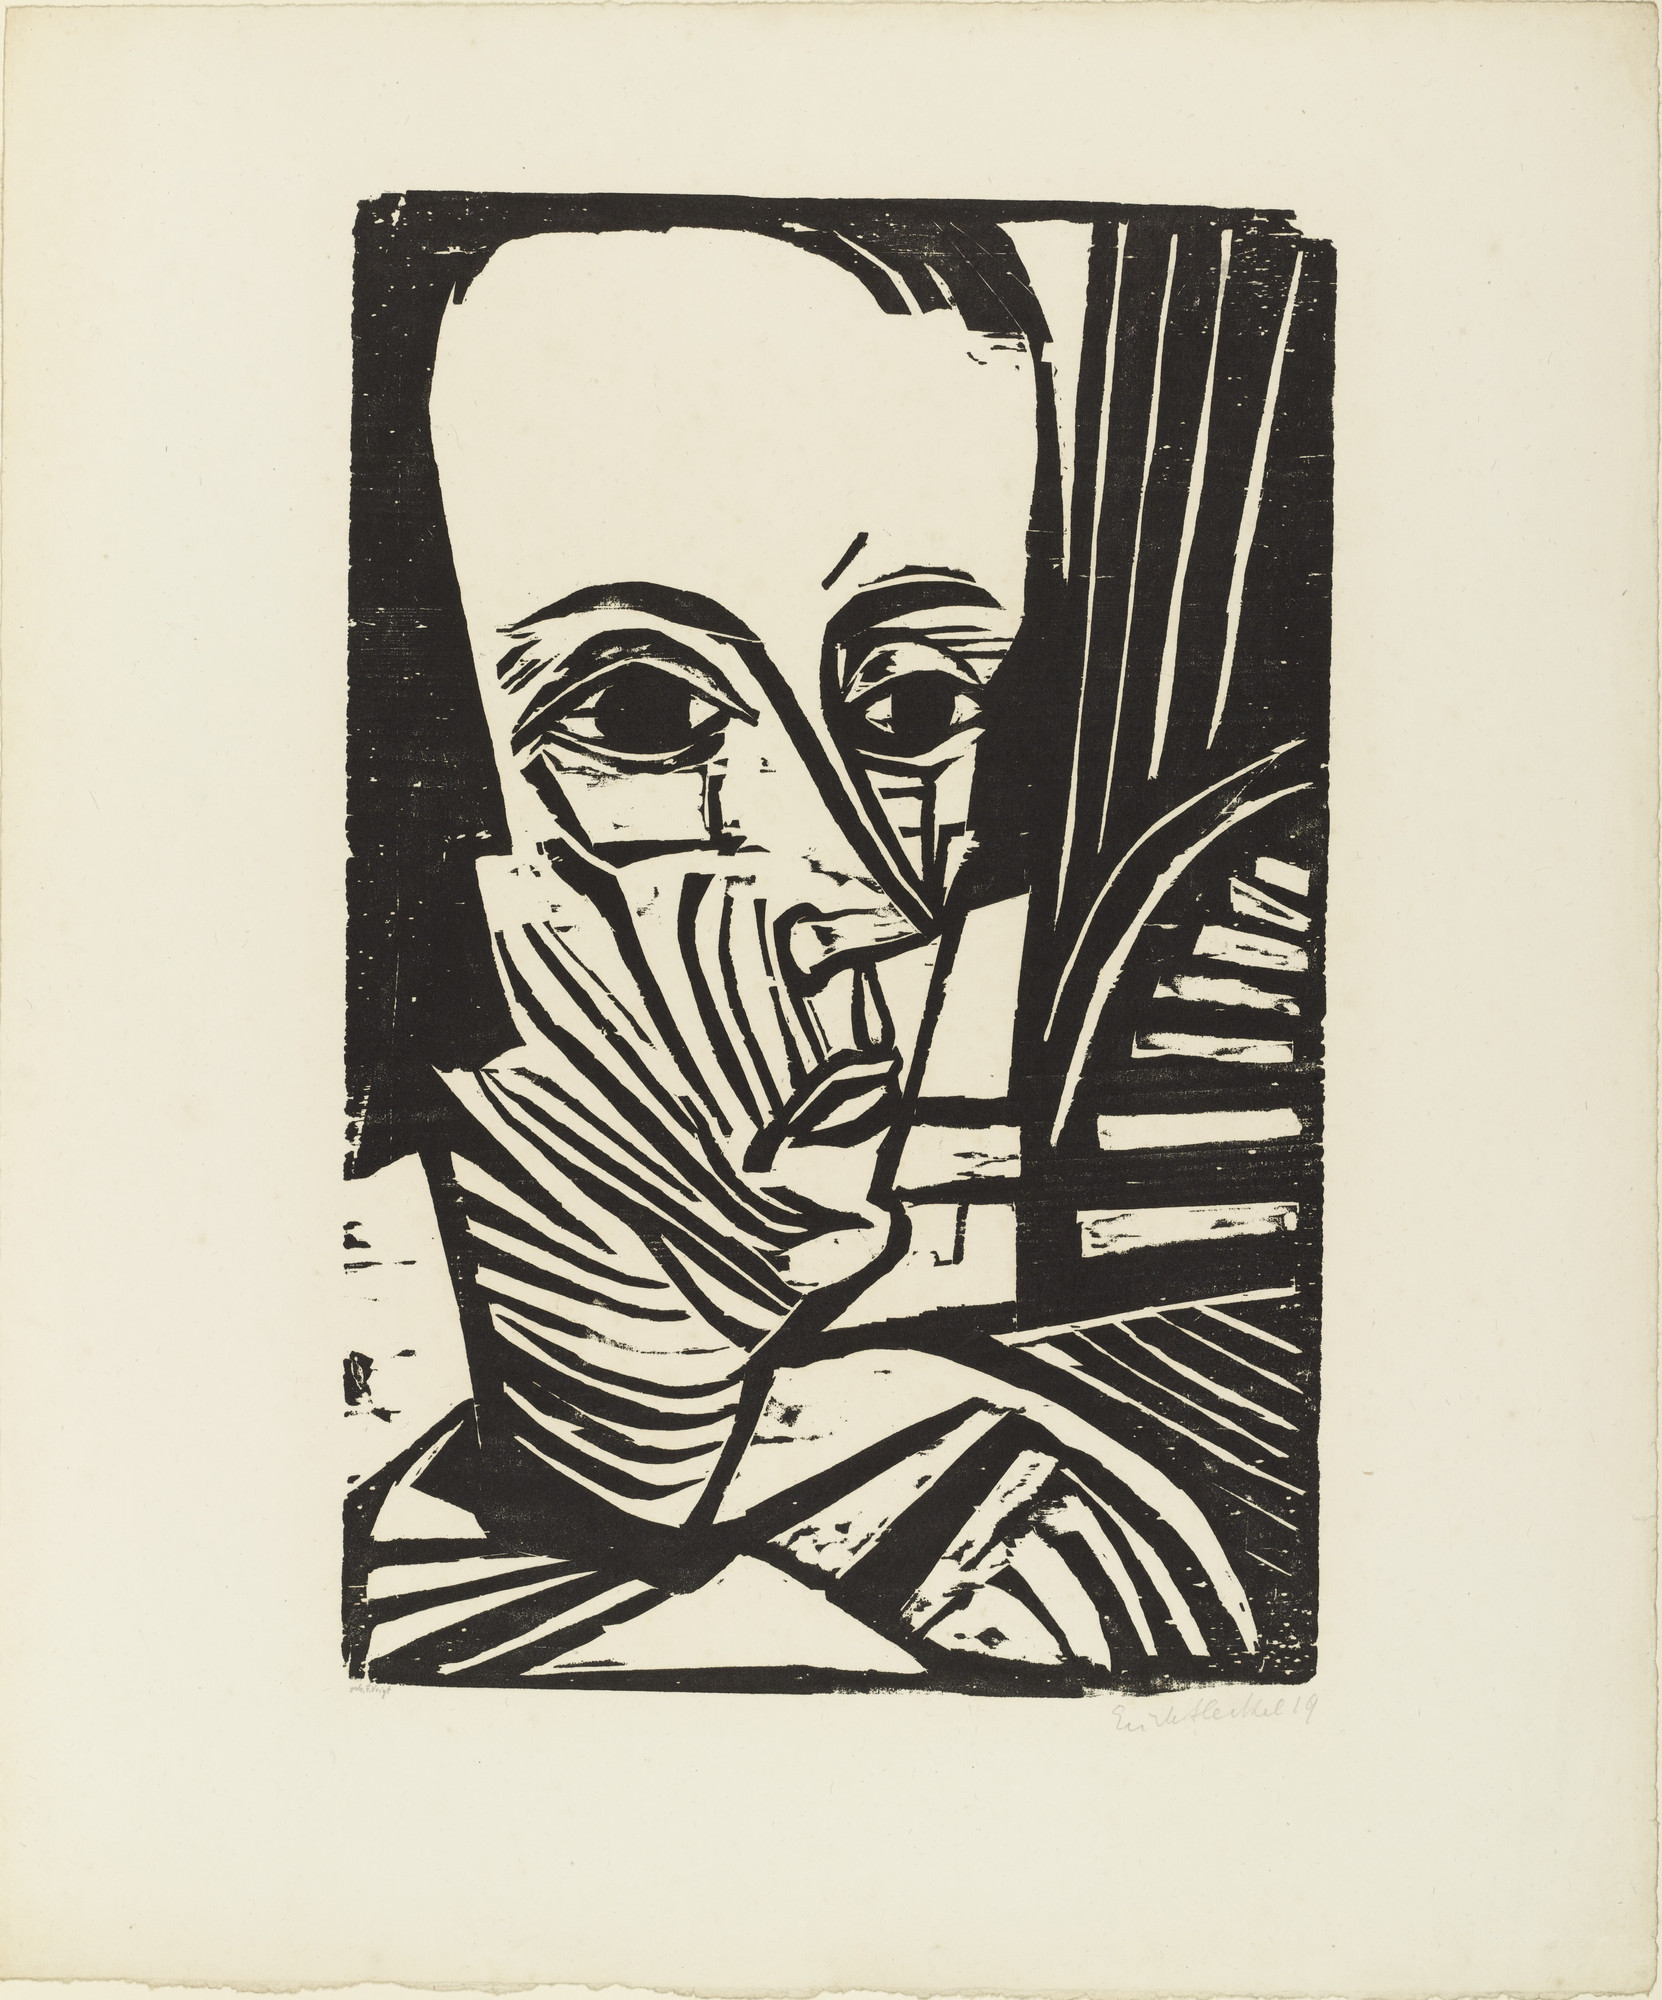 Erich Heckel. A.N. from the portfolio Eleven Woodcuts, 1912-1919 (Elf Holzschnitte, 1912-1919). 1919 (published 1921)